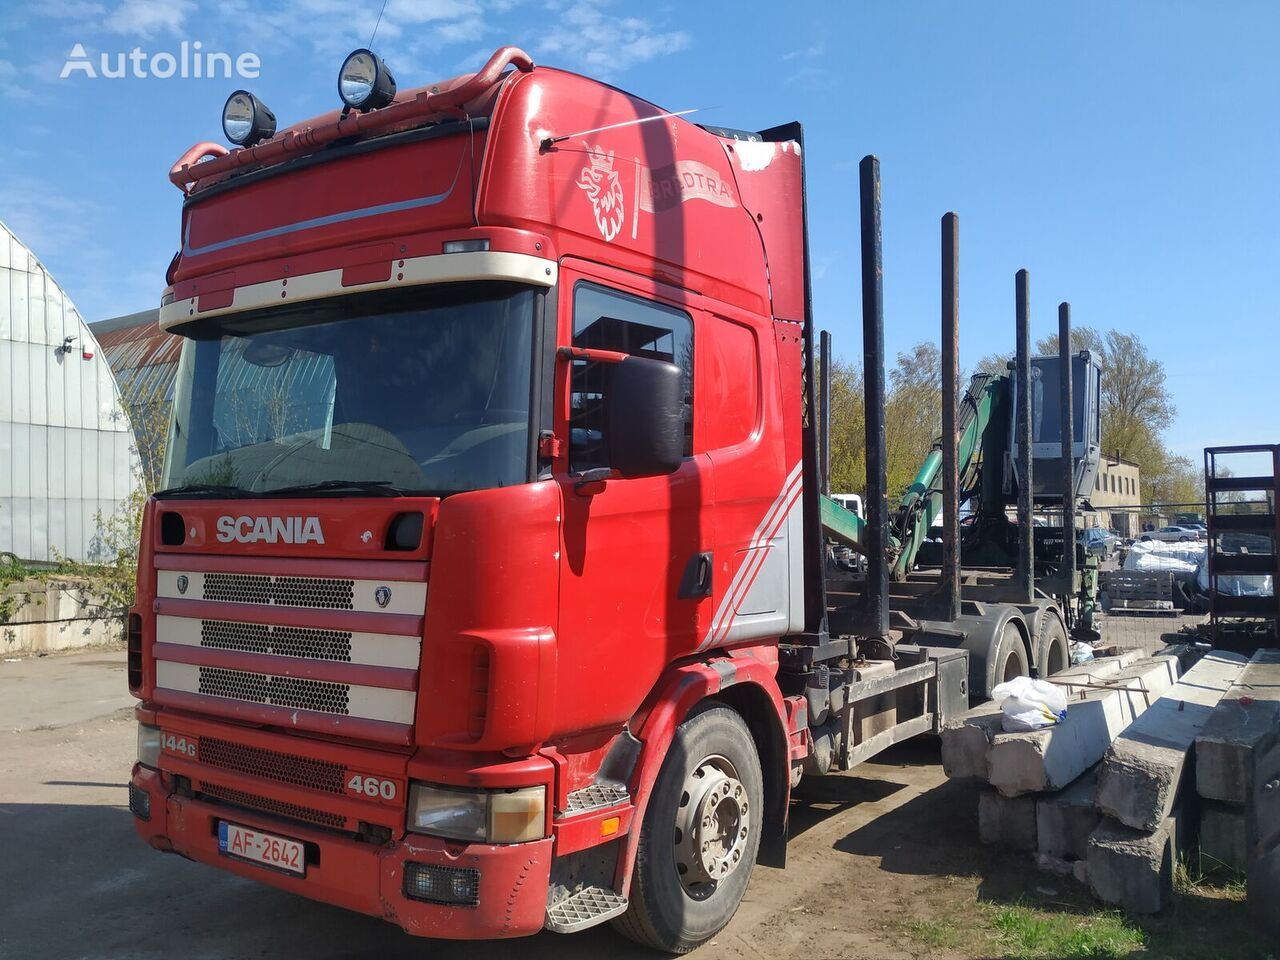 SCANIA 144 timber truck